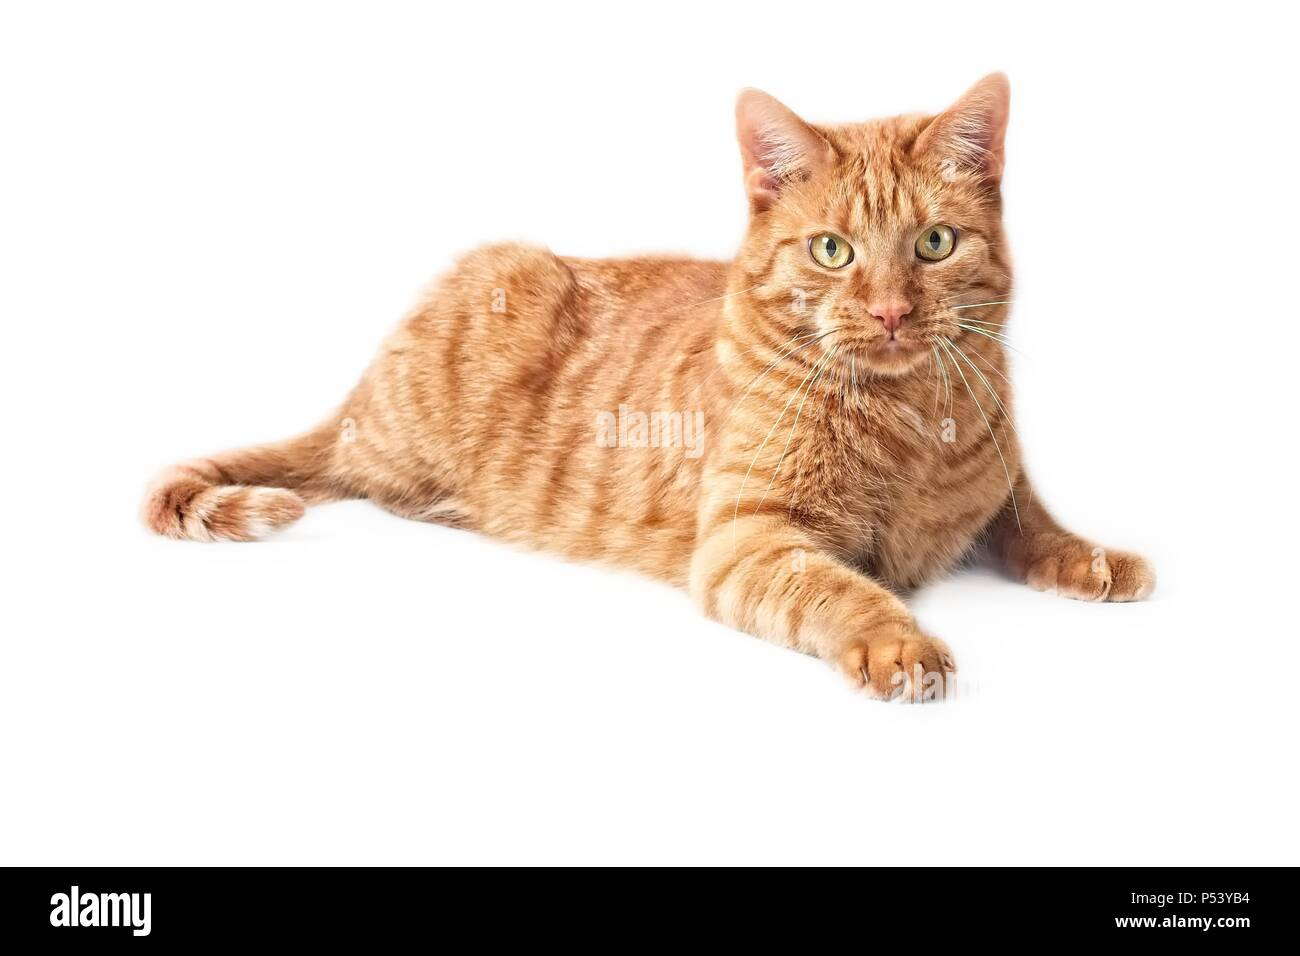 Cute ginger cat lying on the floor - isolated on white background. Stock Photo